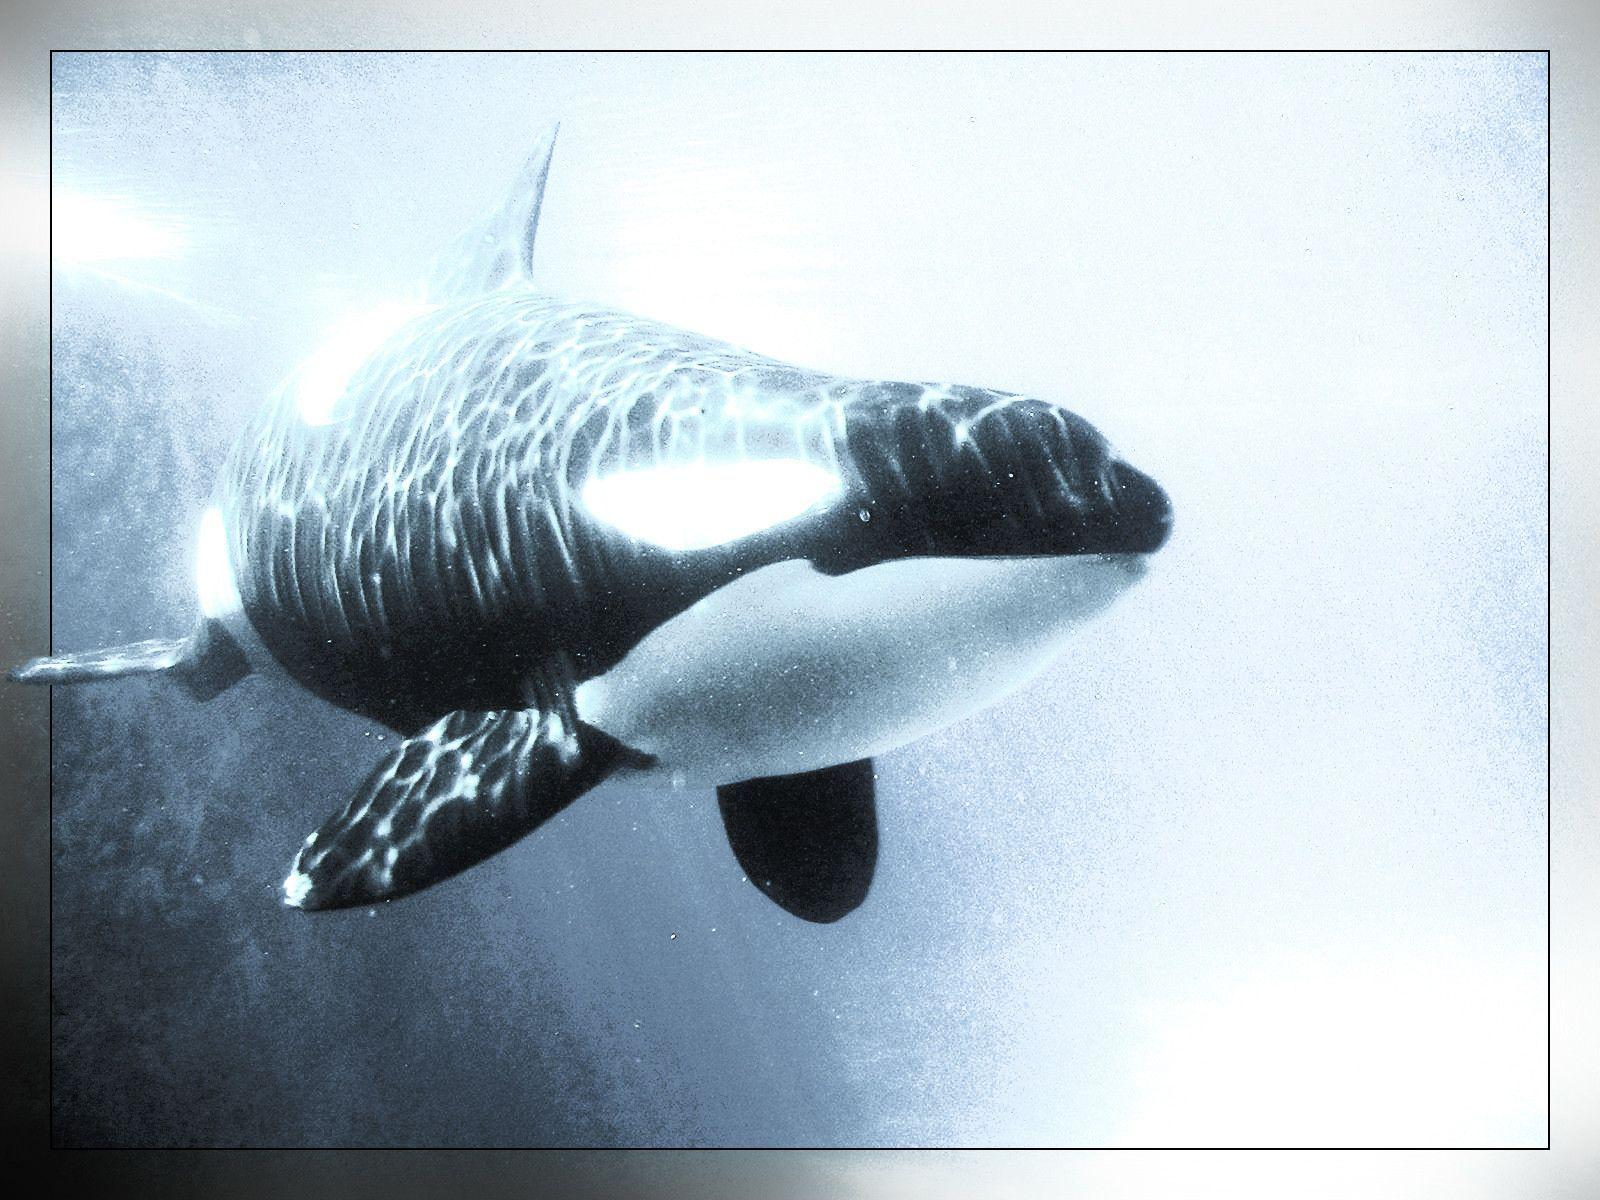 shamu&Whales Killer Animals Orca wallpapers #